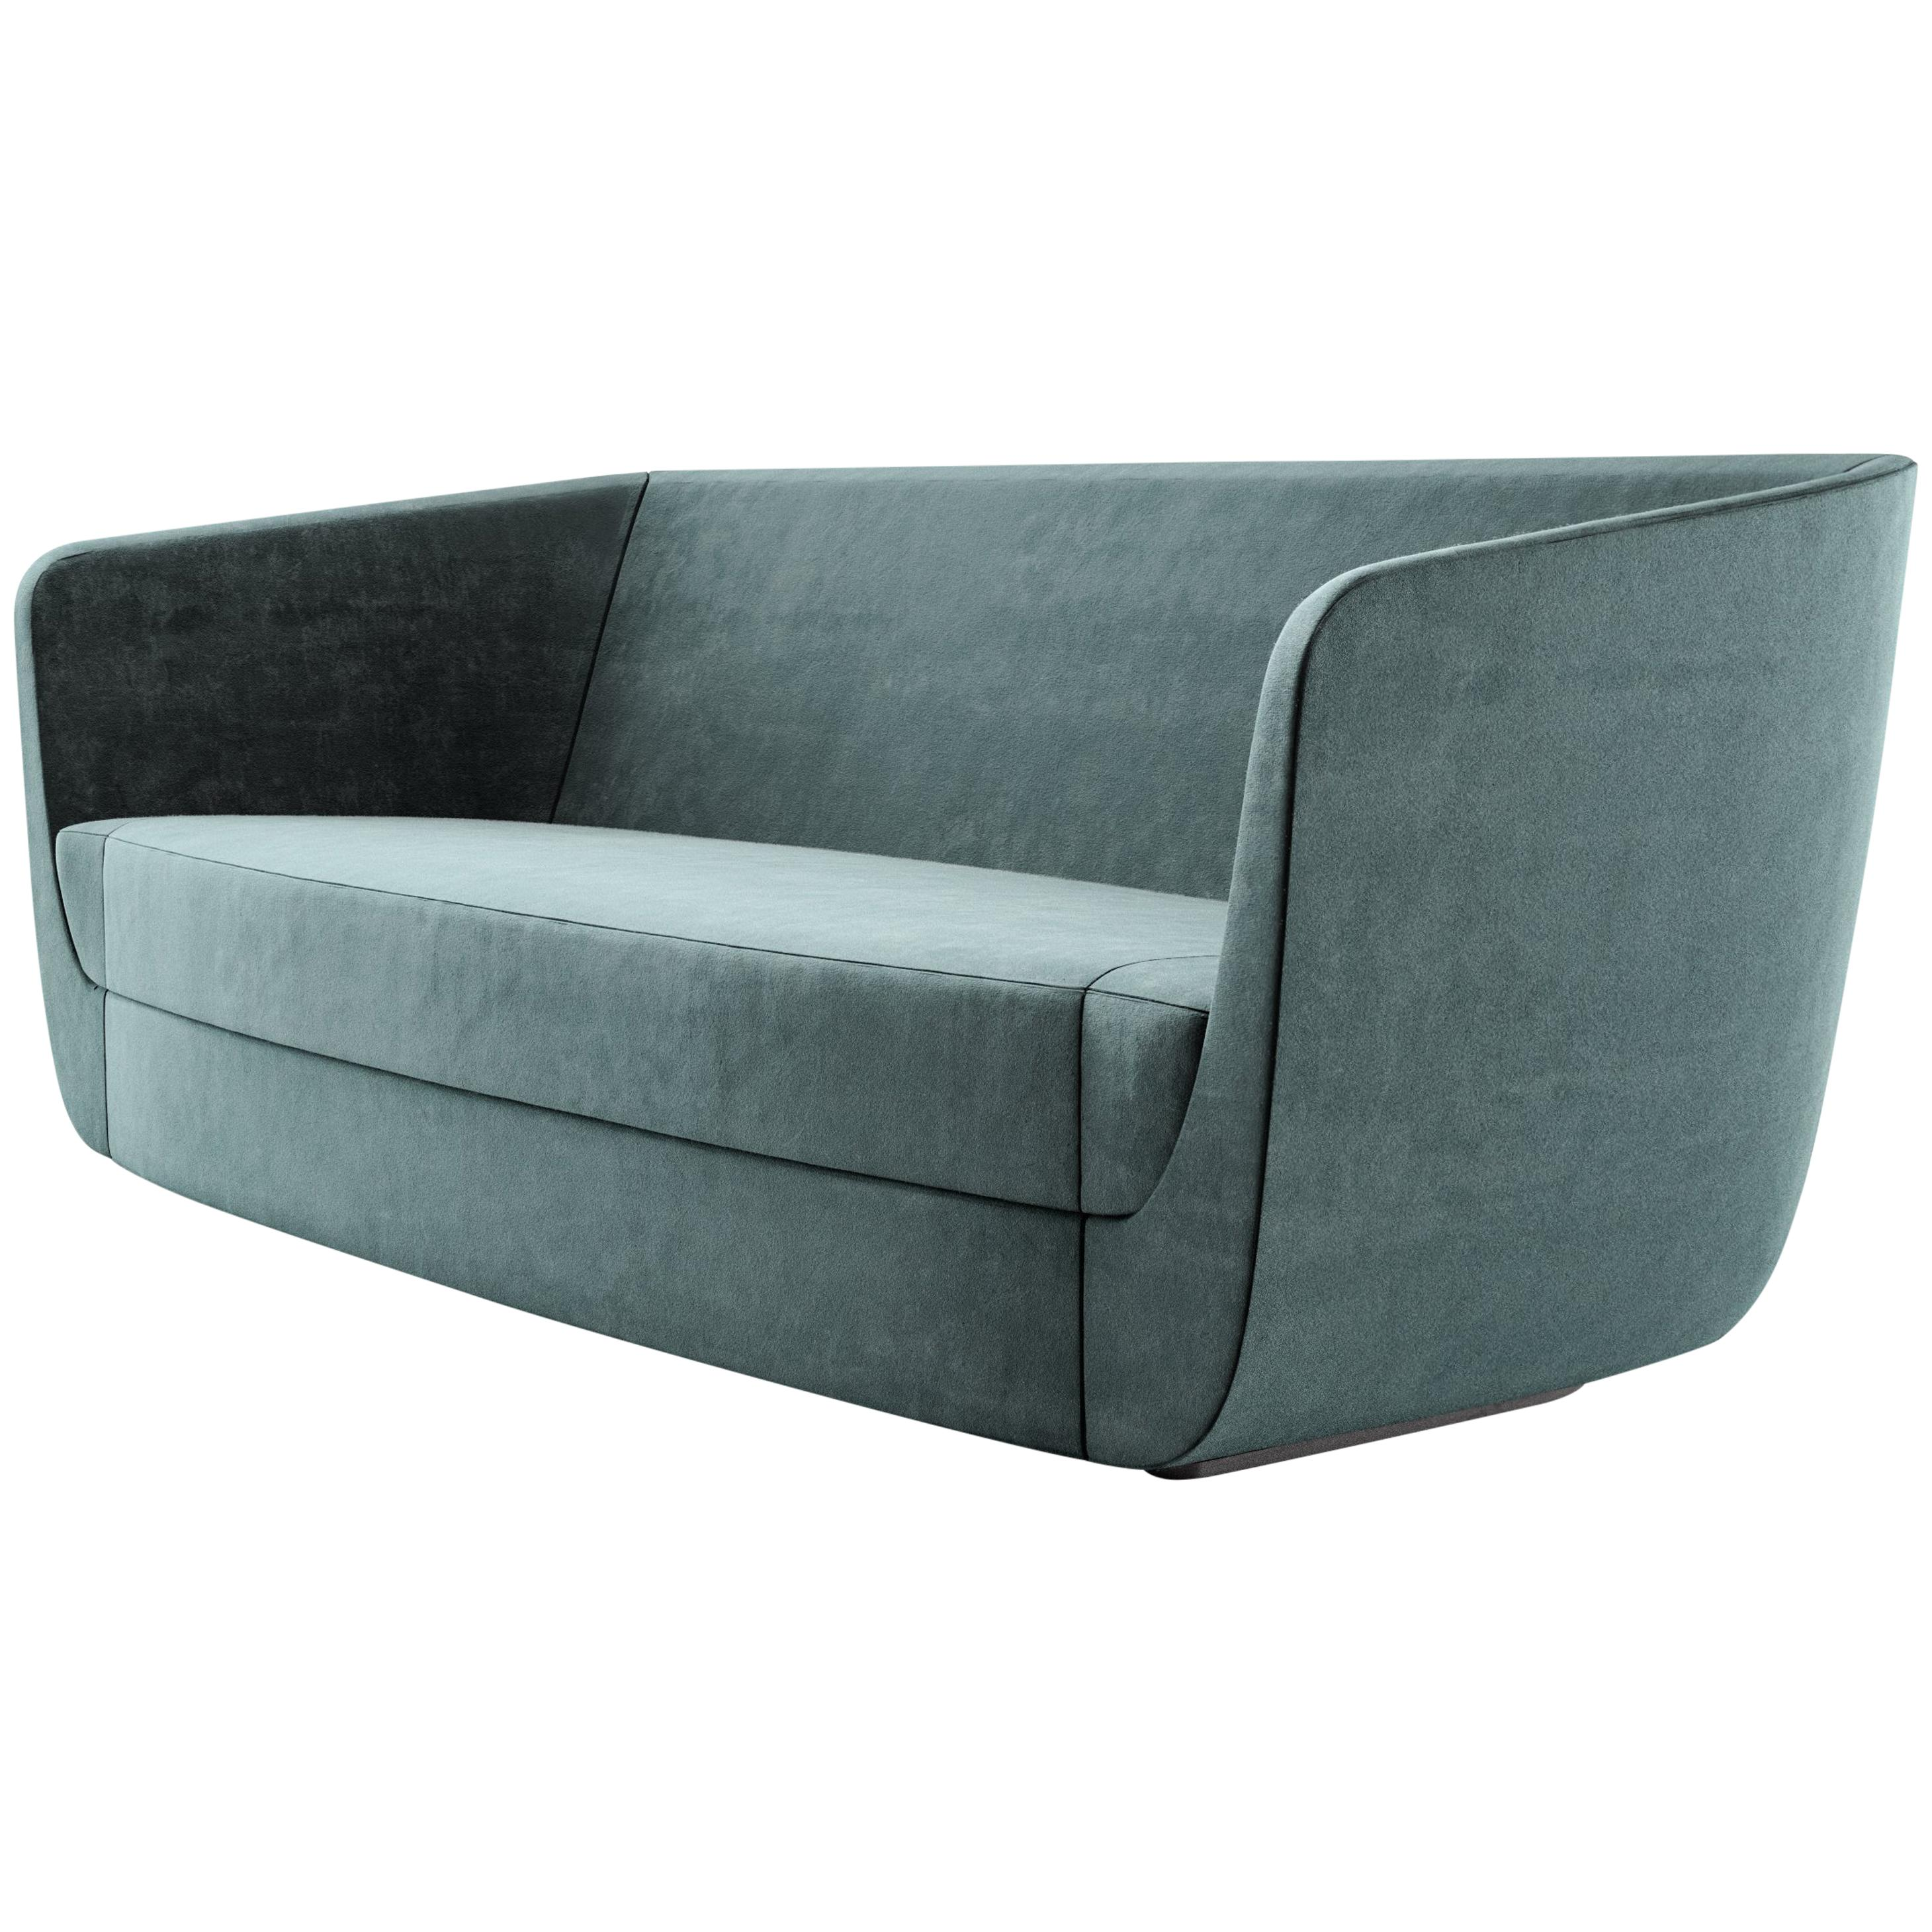 Clasp Modern Sofa, A Contemporary Three Seat Upholstered In Holly Hunt  Velvet For Sale